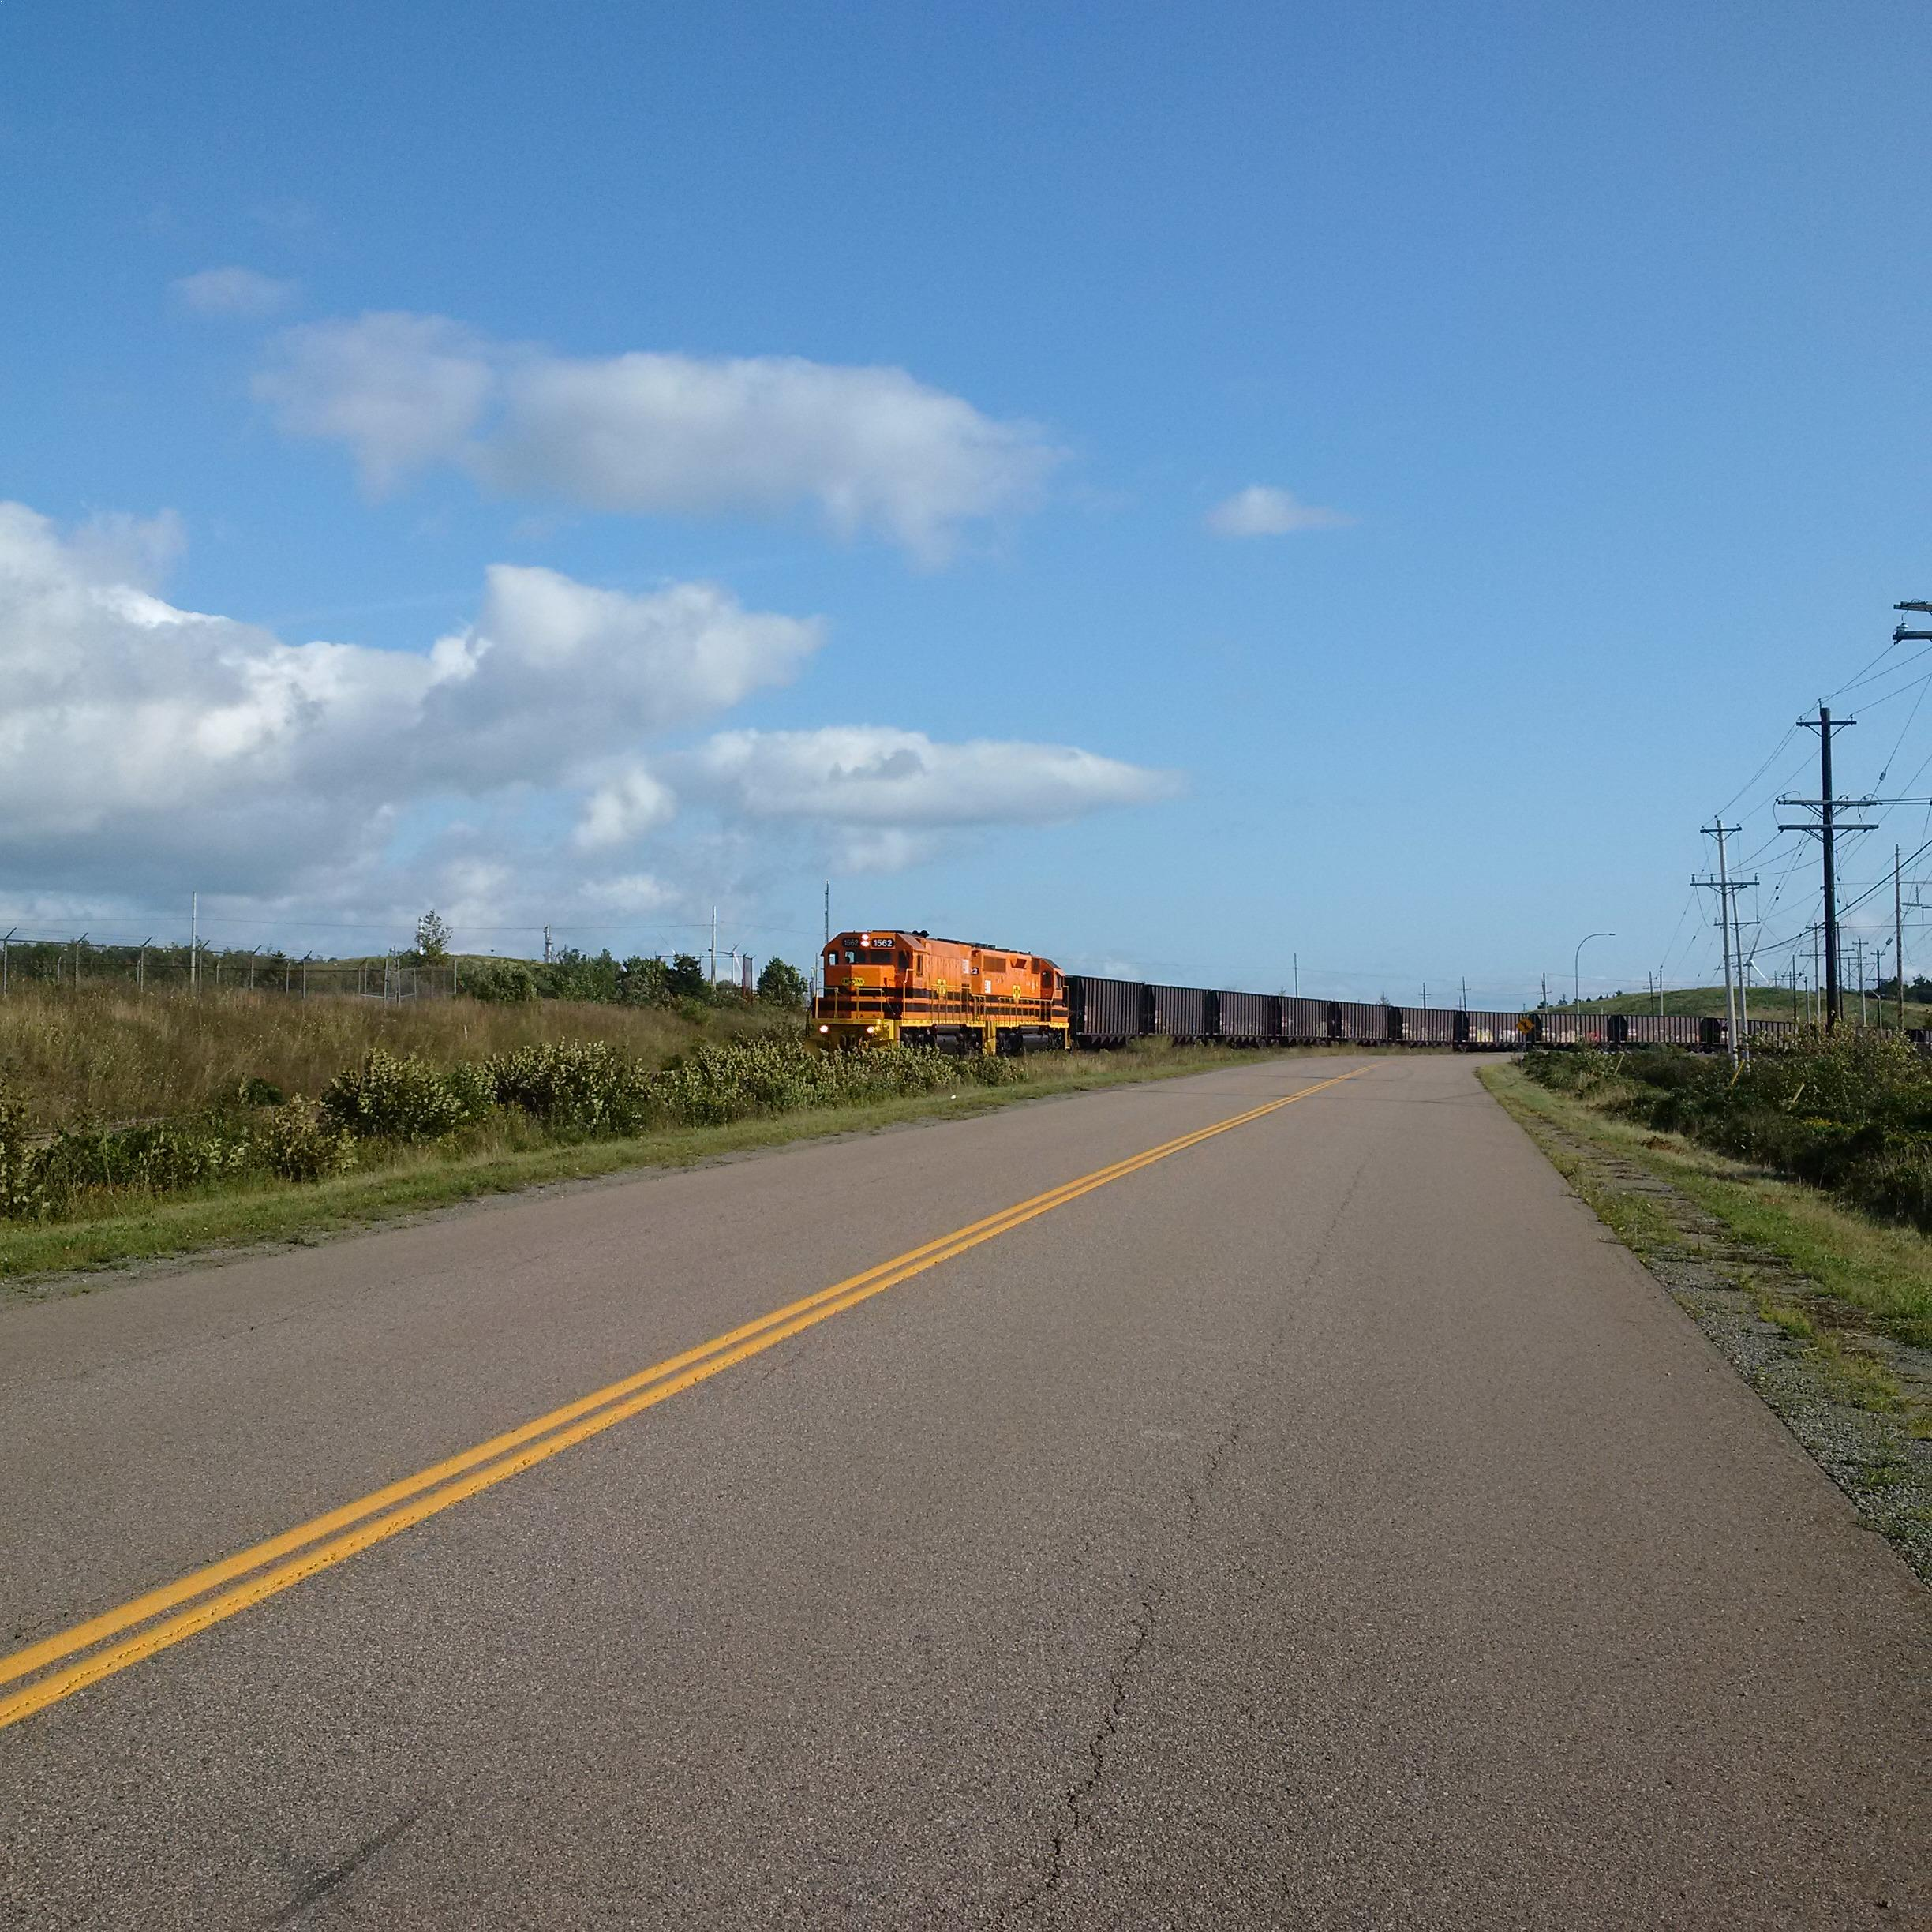 A train travelling along a road representing the Cape Breton and Central Nova Scotia Railway